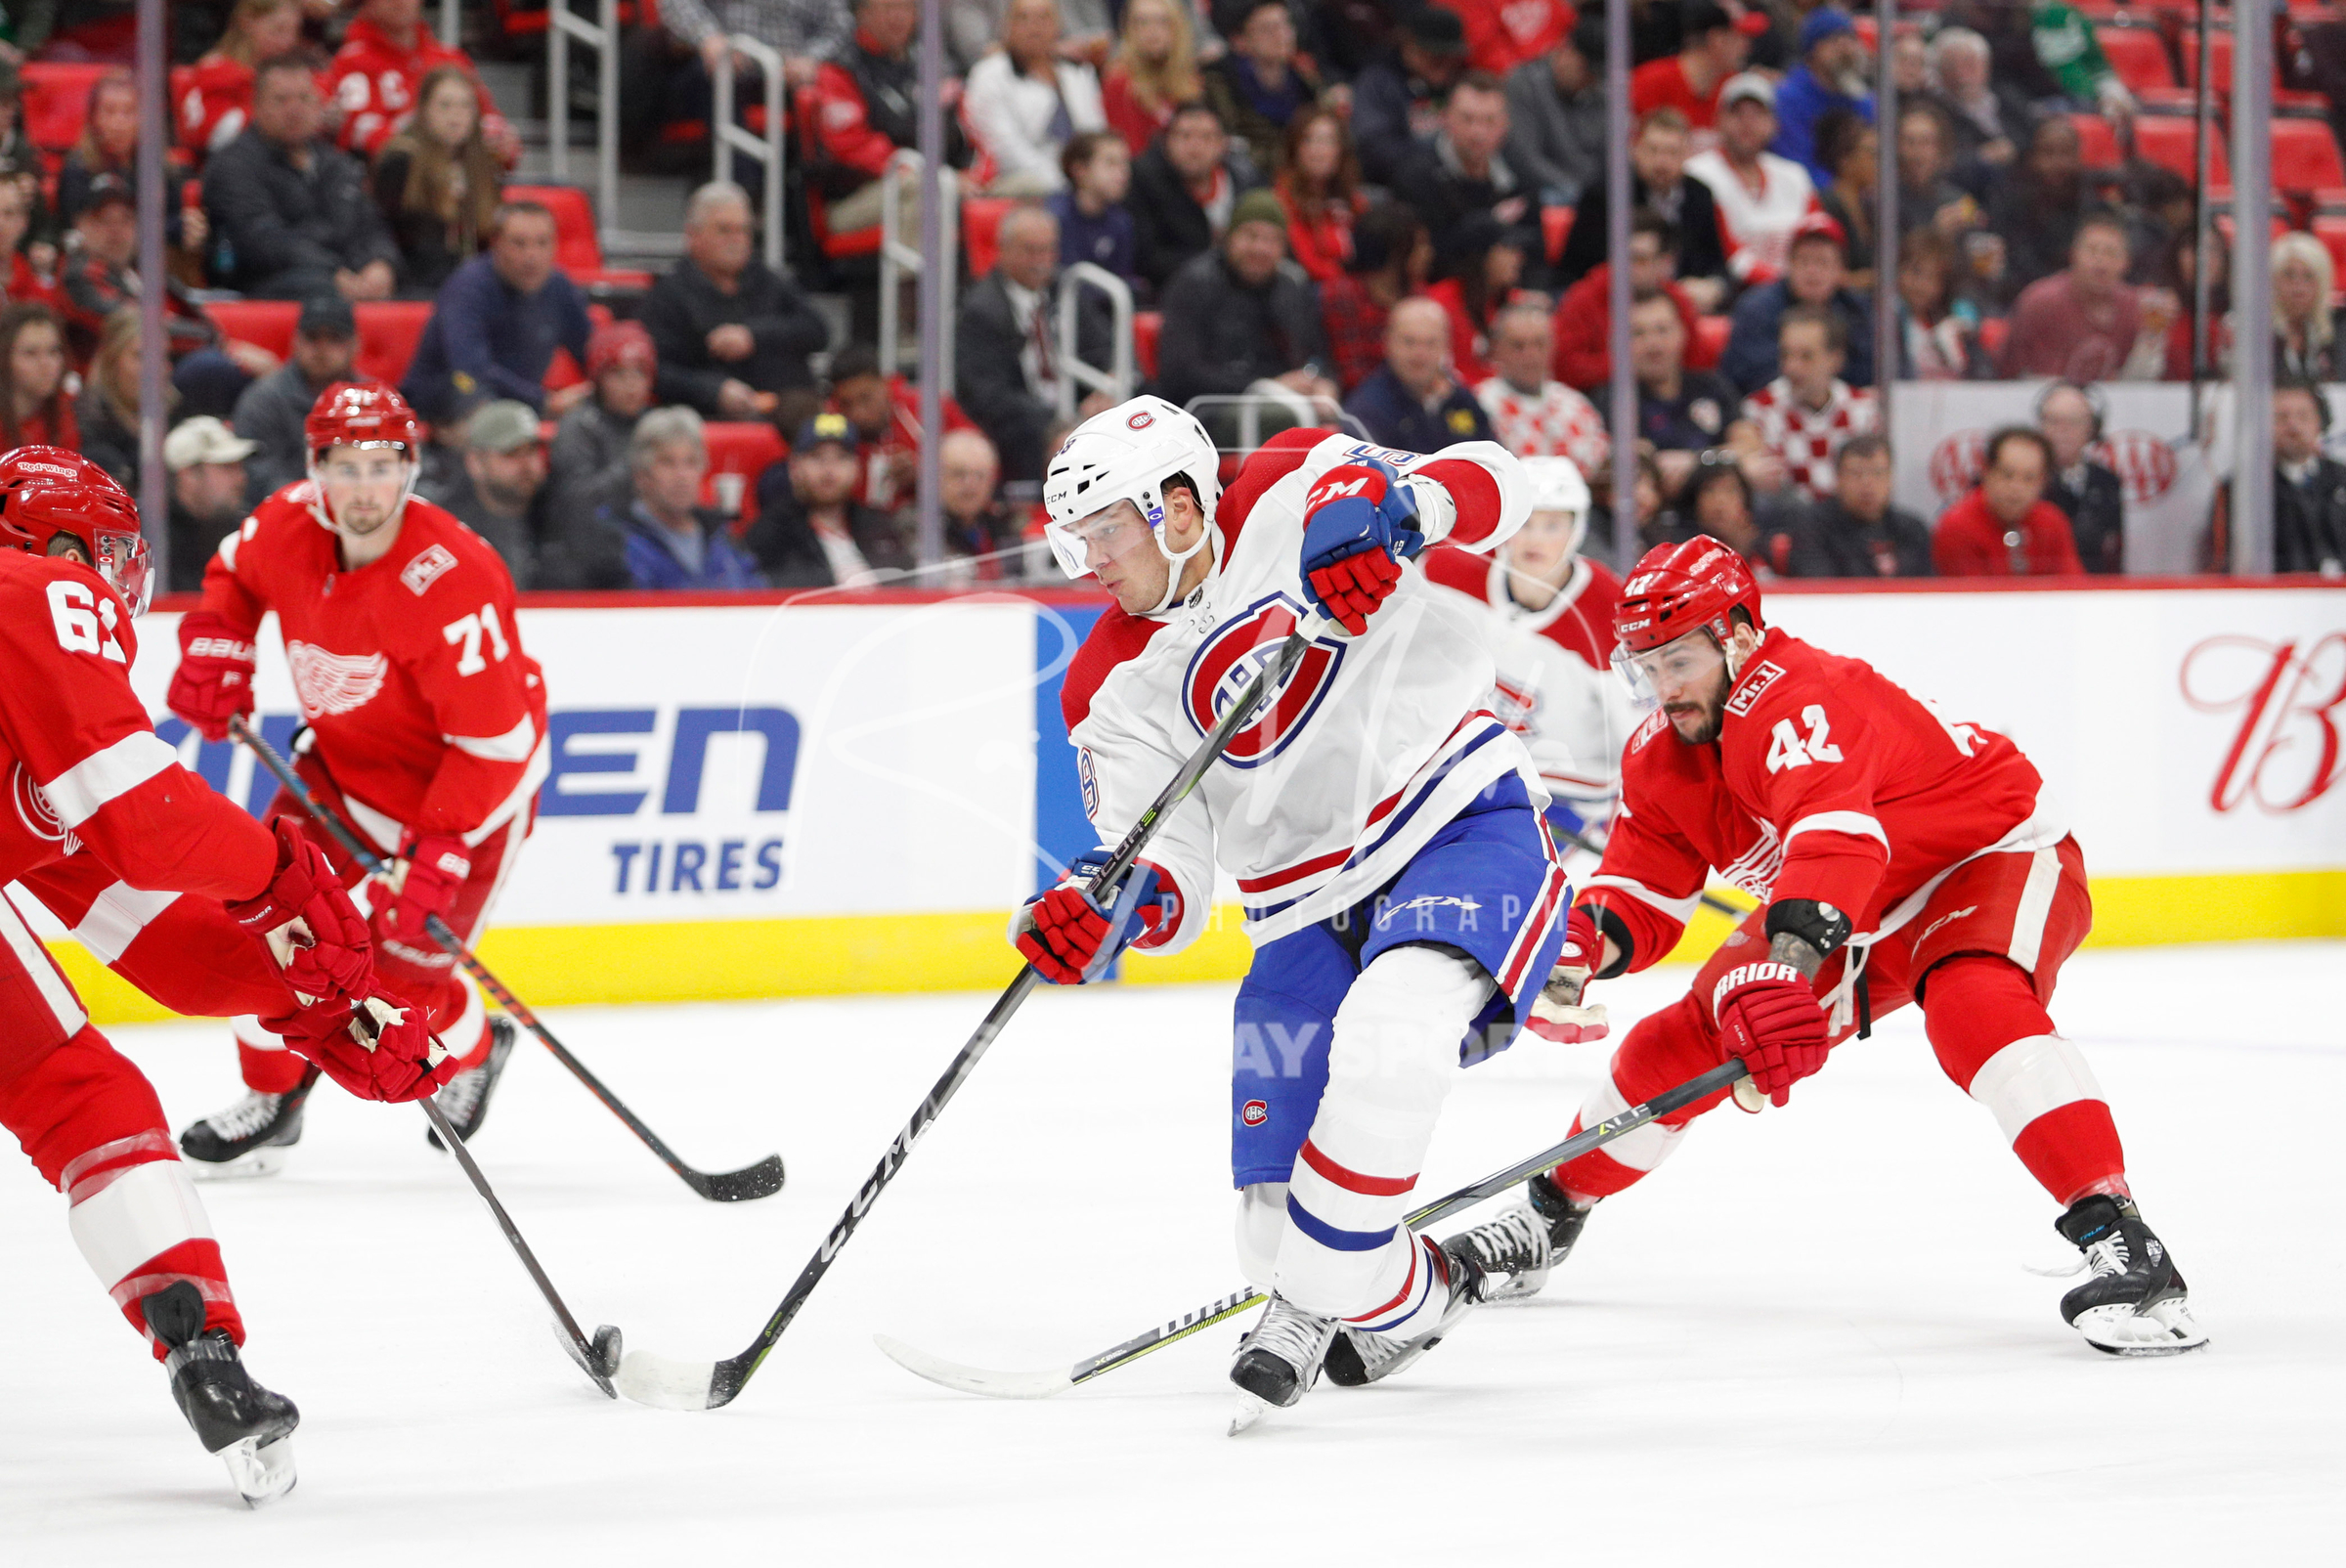 Apr 5, 2018; Detroit, MI, USA; Montreal Canadiens defenseman Noah Juulsen (58) gets defended by Detroit Red Wings defenseman Xavier Ouellet (61) and right wing Martin Frk (42) during the first period at Little Caesars Arena. Mandatory Credit: Raj Mehta-USA TODAY Sports